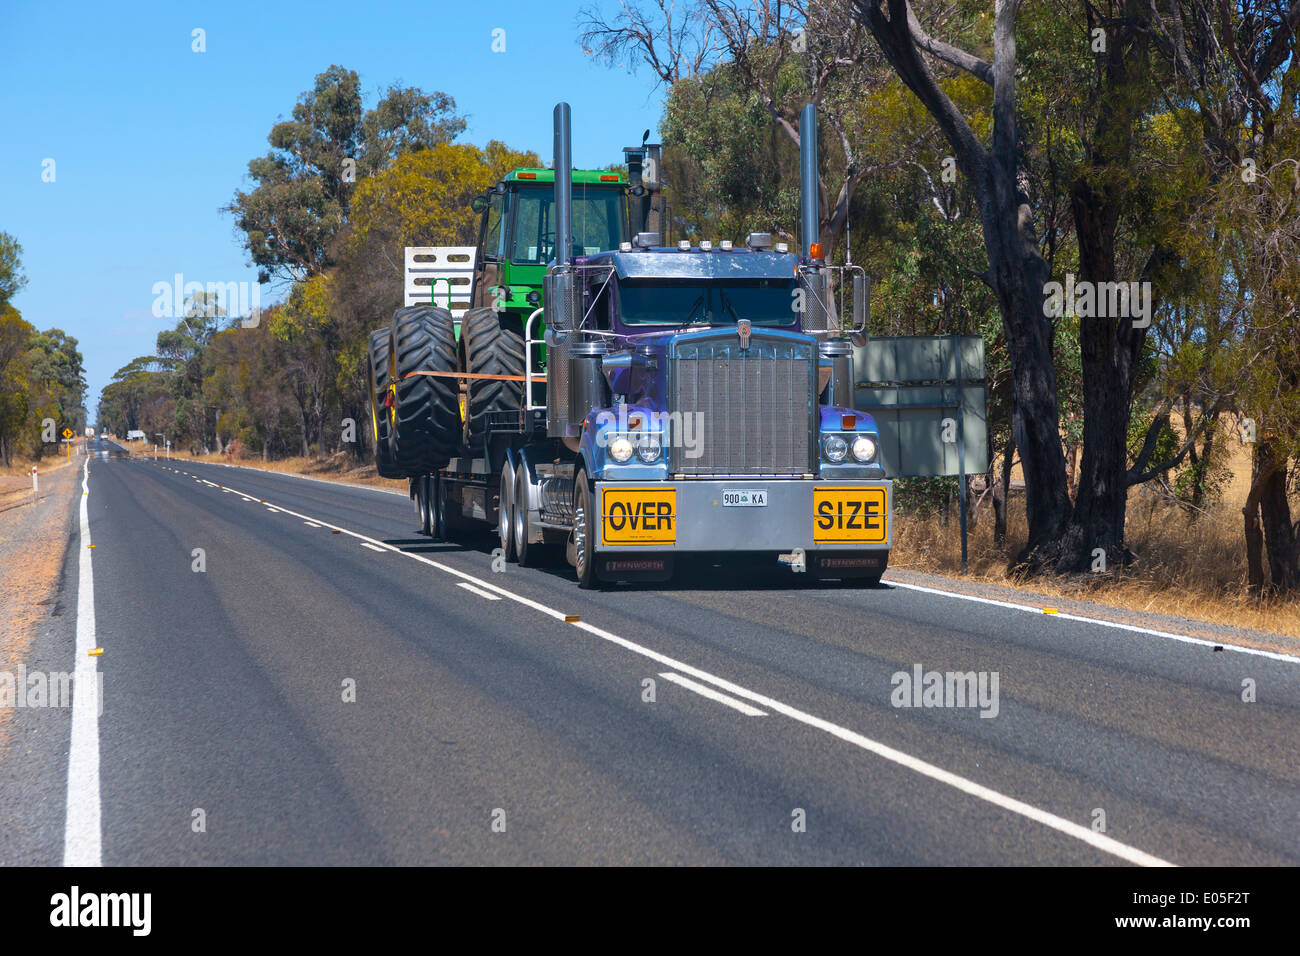 Kenworth Truck transporting a large tractor near Collie, Western Australia - Stock Image